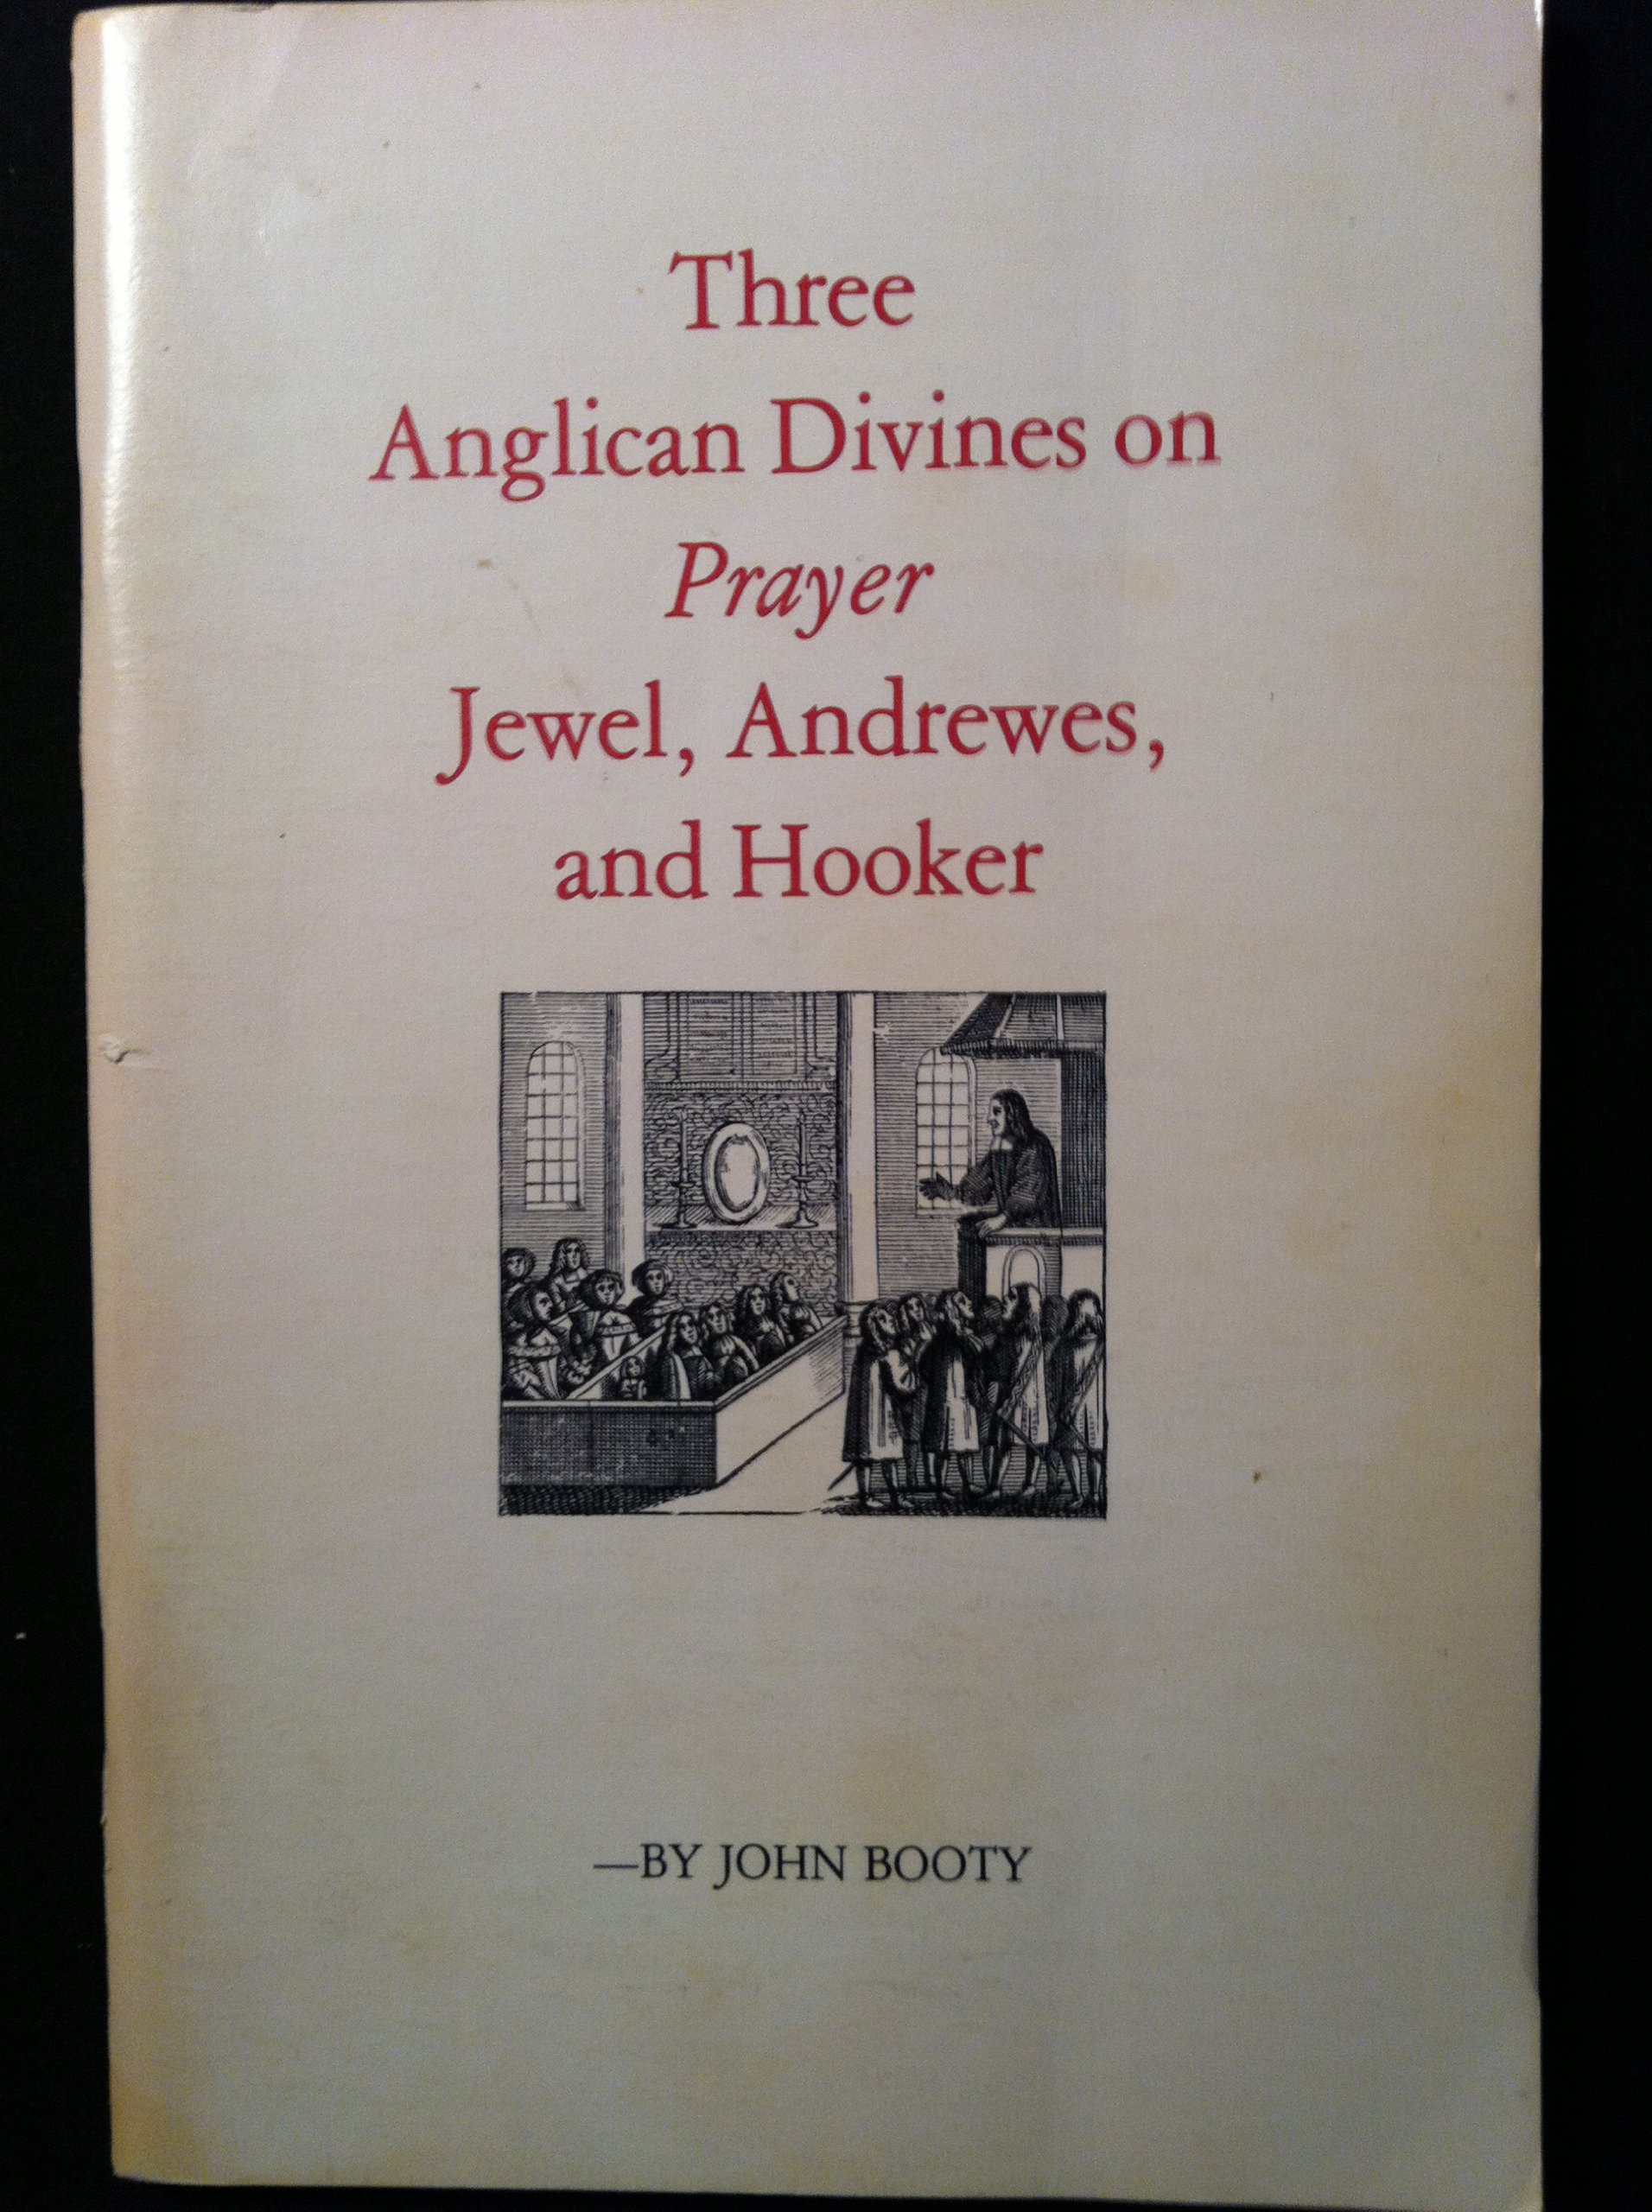 Three Anglican divines on prayer: Jewel, Andrewes, and Hooker : lectures given for the Society of St. John the Evangelist, Cambridge, Mass., Nov. 1977, Booty, John E